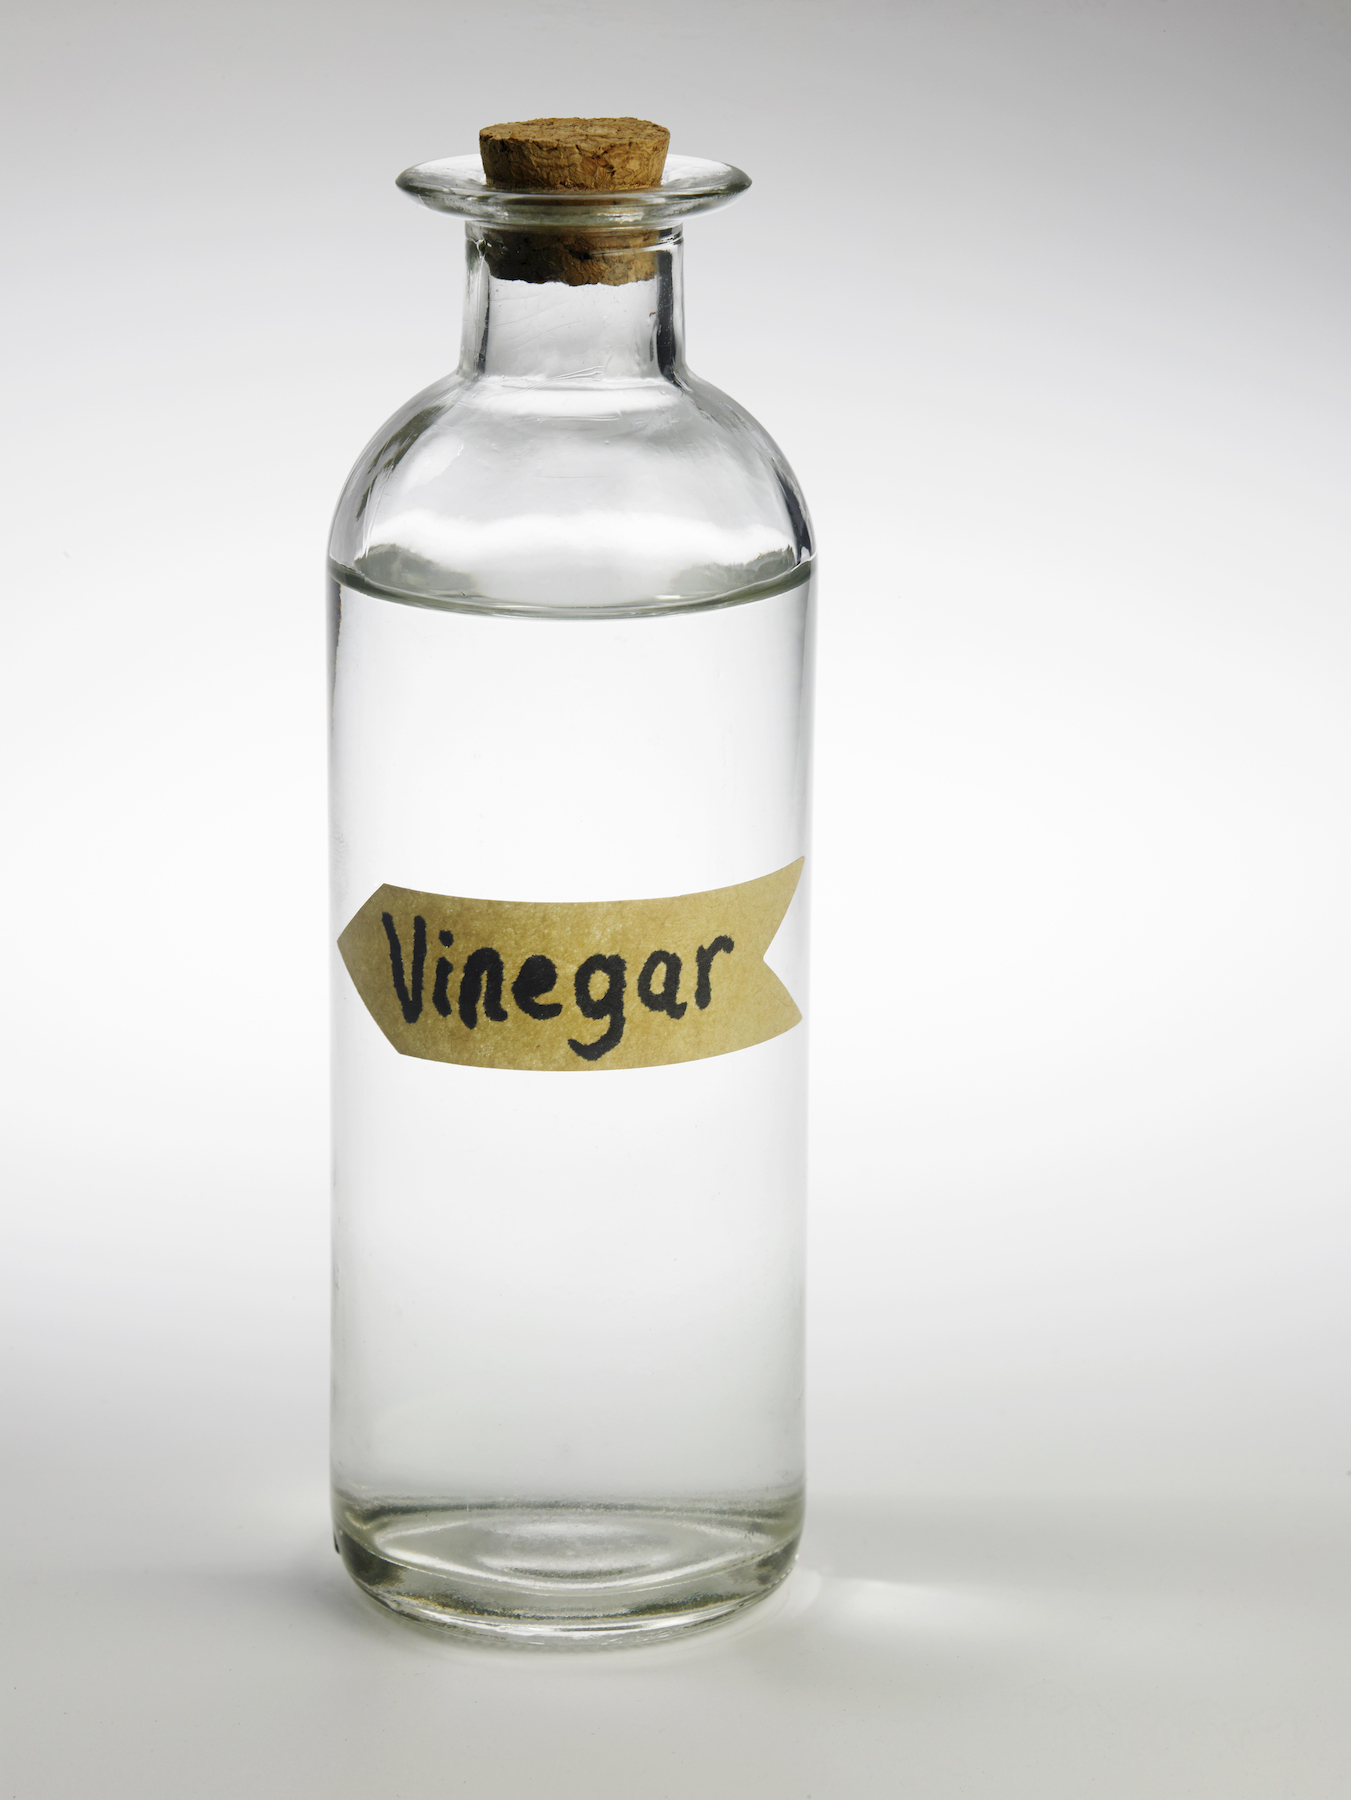 Cleaning with white vinegar